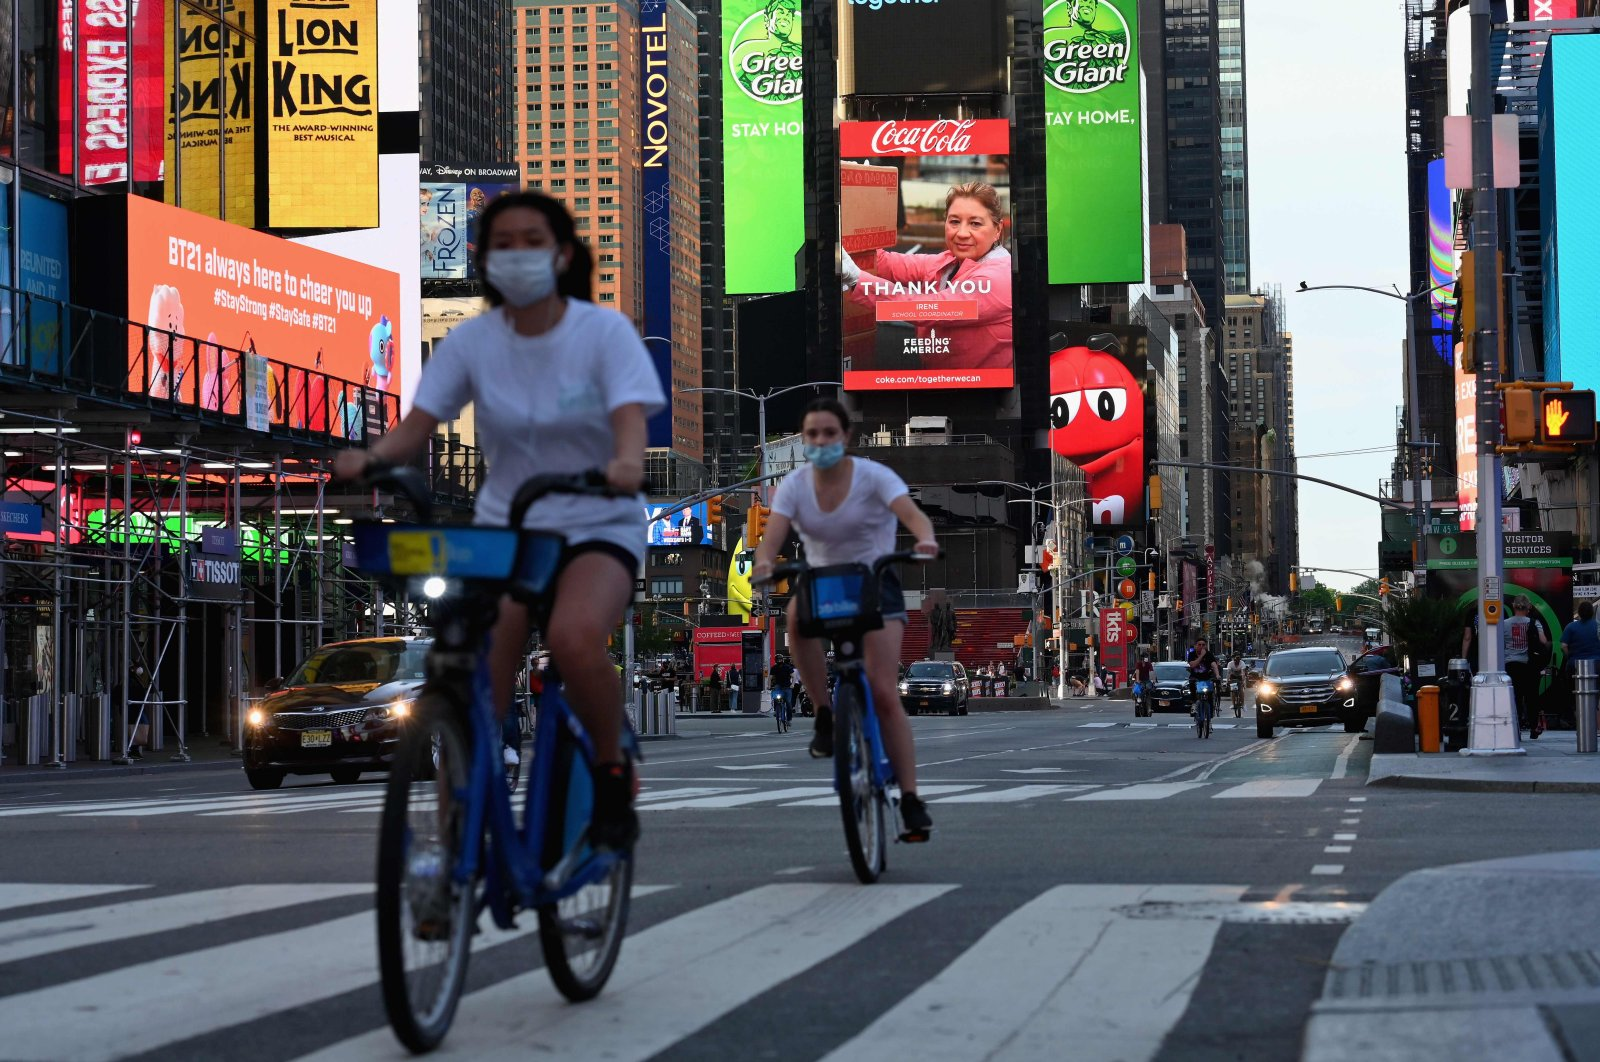 People wearing face masks ride their bikes through Times Square in New York City, amid the novel coronavirus pandemic, May 27, 2020. (AFP Photo)